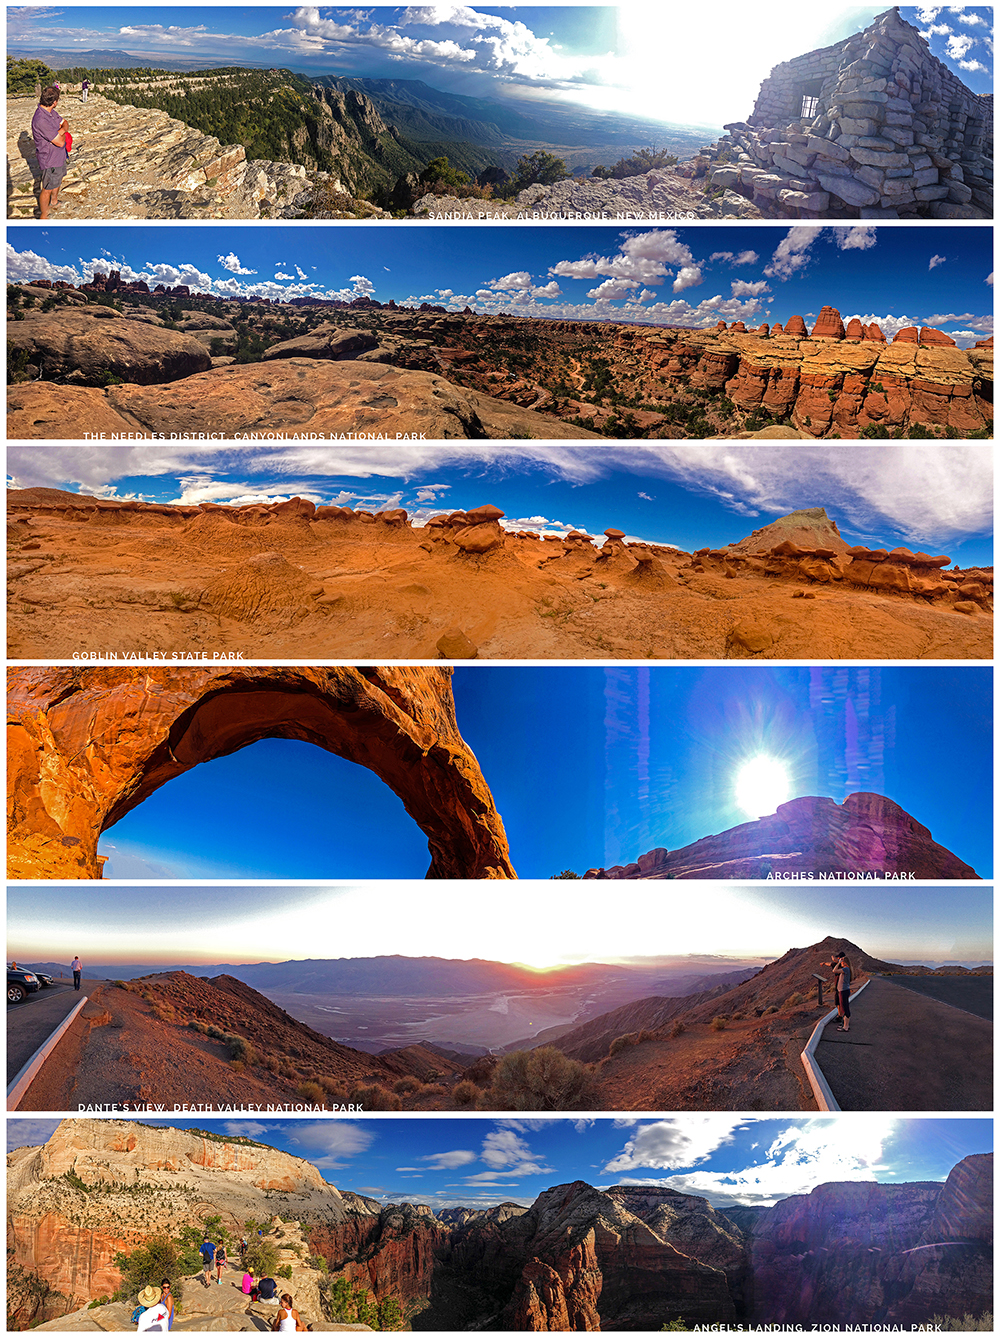 American Southwest 2014 Panorama Poster_08_2